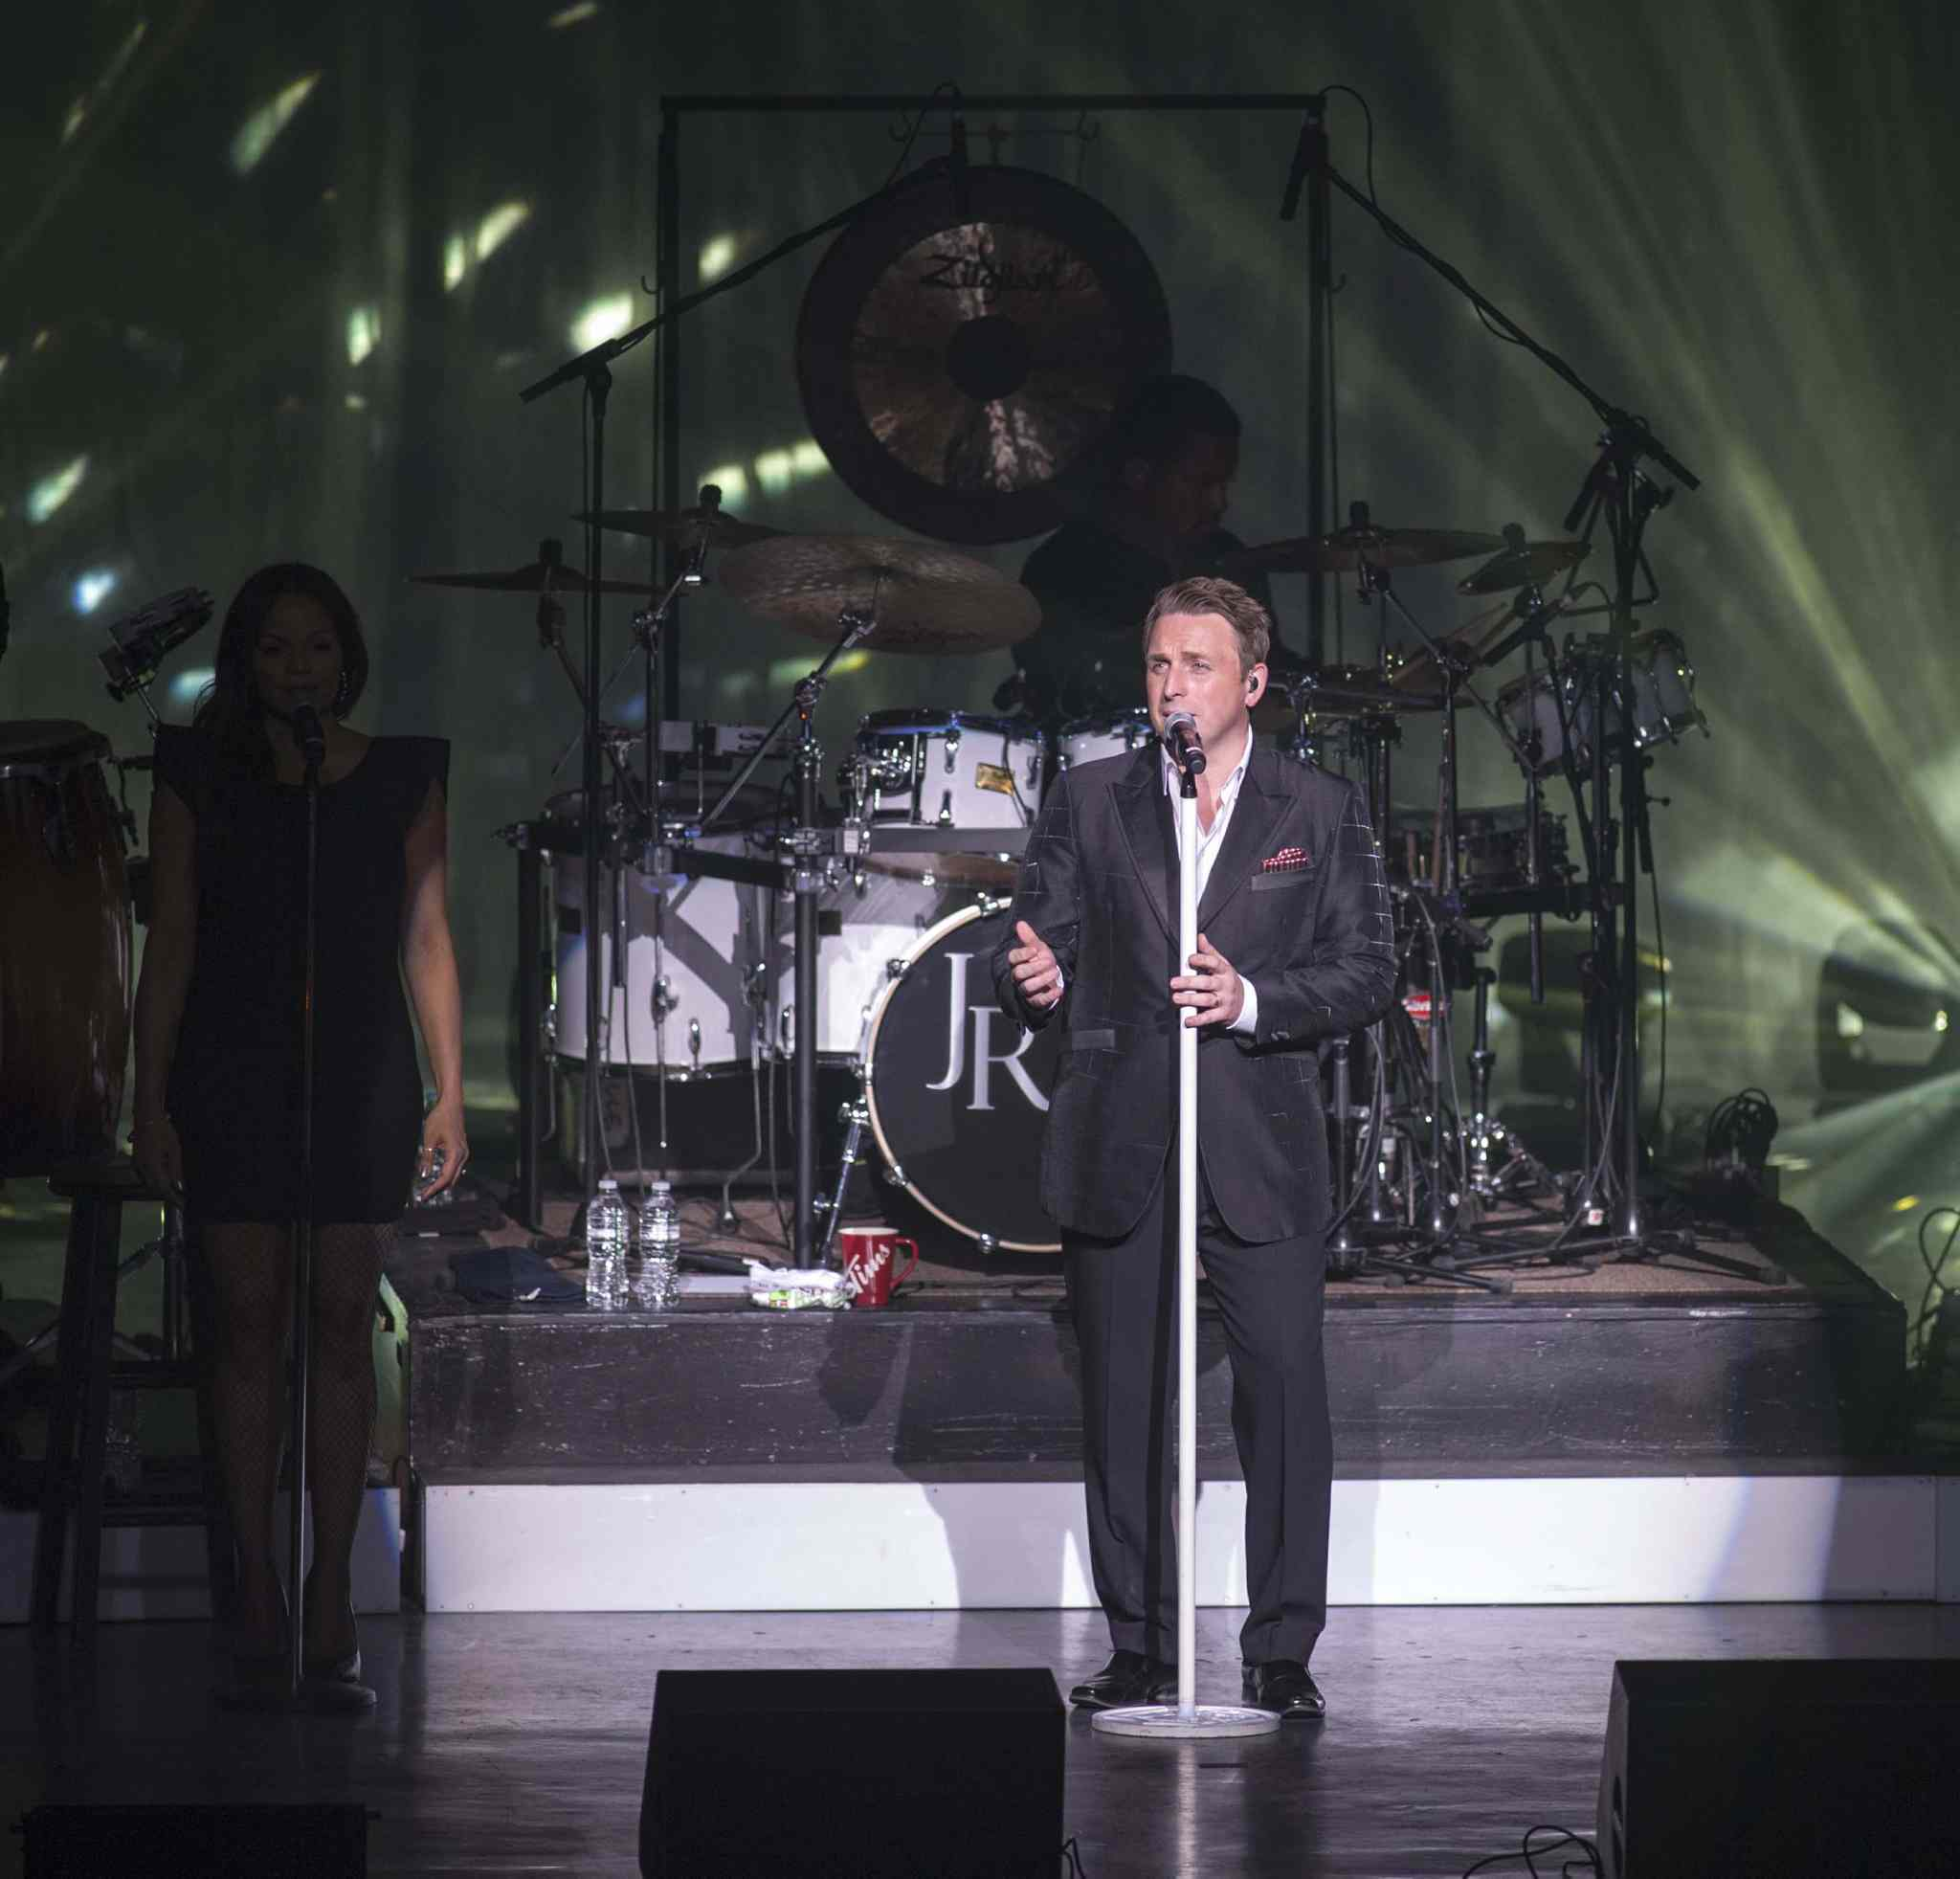 Johnny Reid converses with the audience.